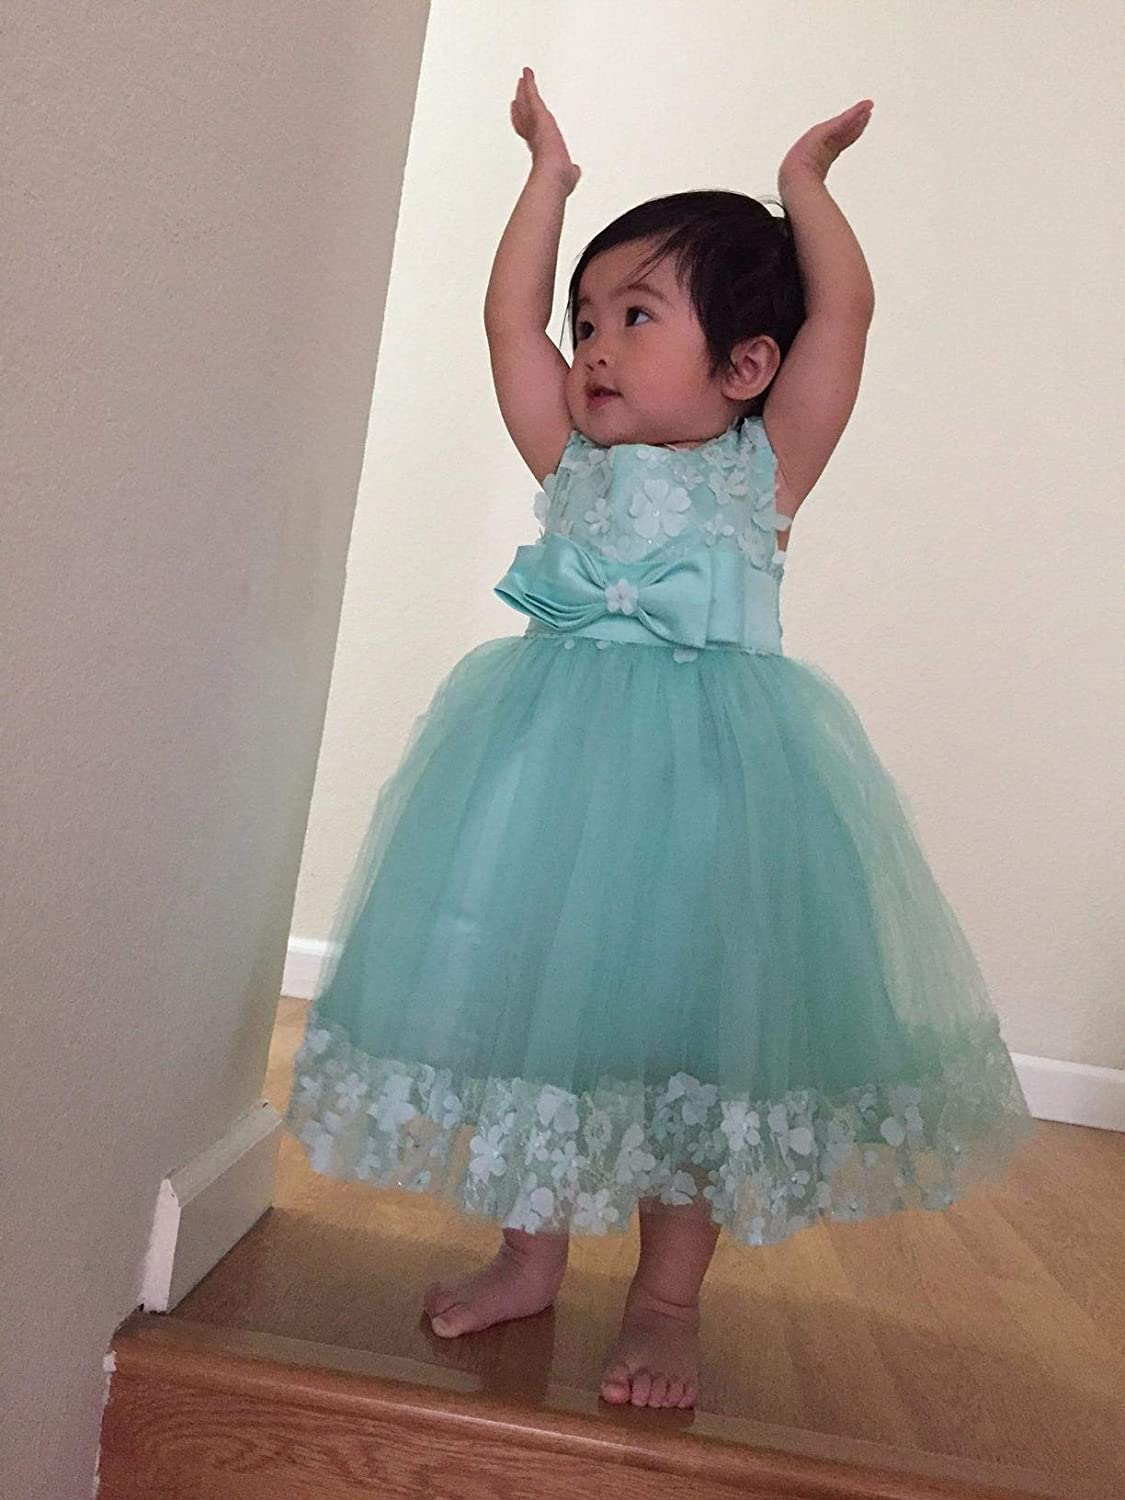 Weileenice 1-14 Years Big//Little Girl Flower Lace Wedding A-line Party Dresses